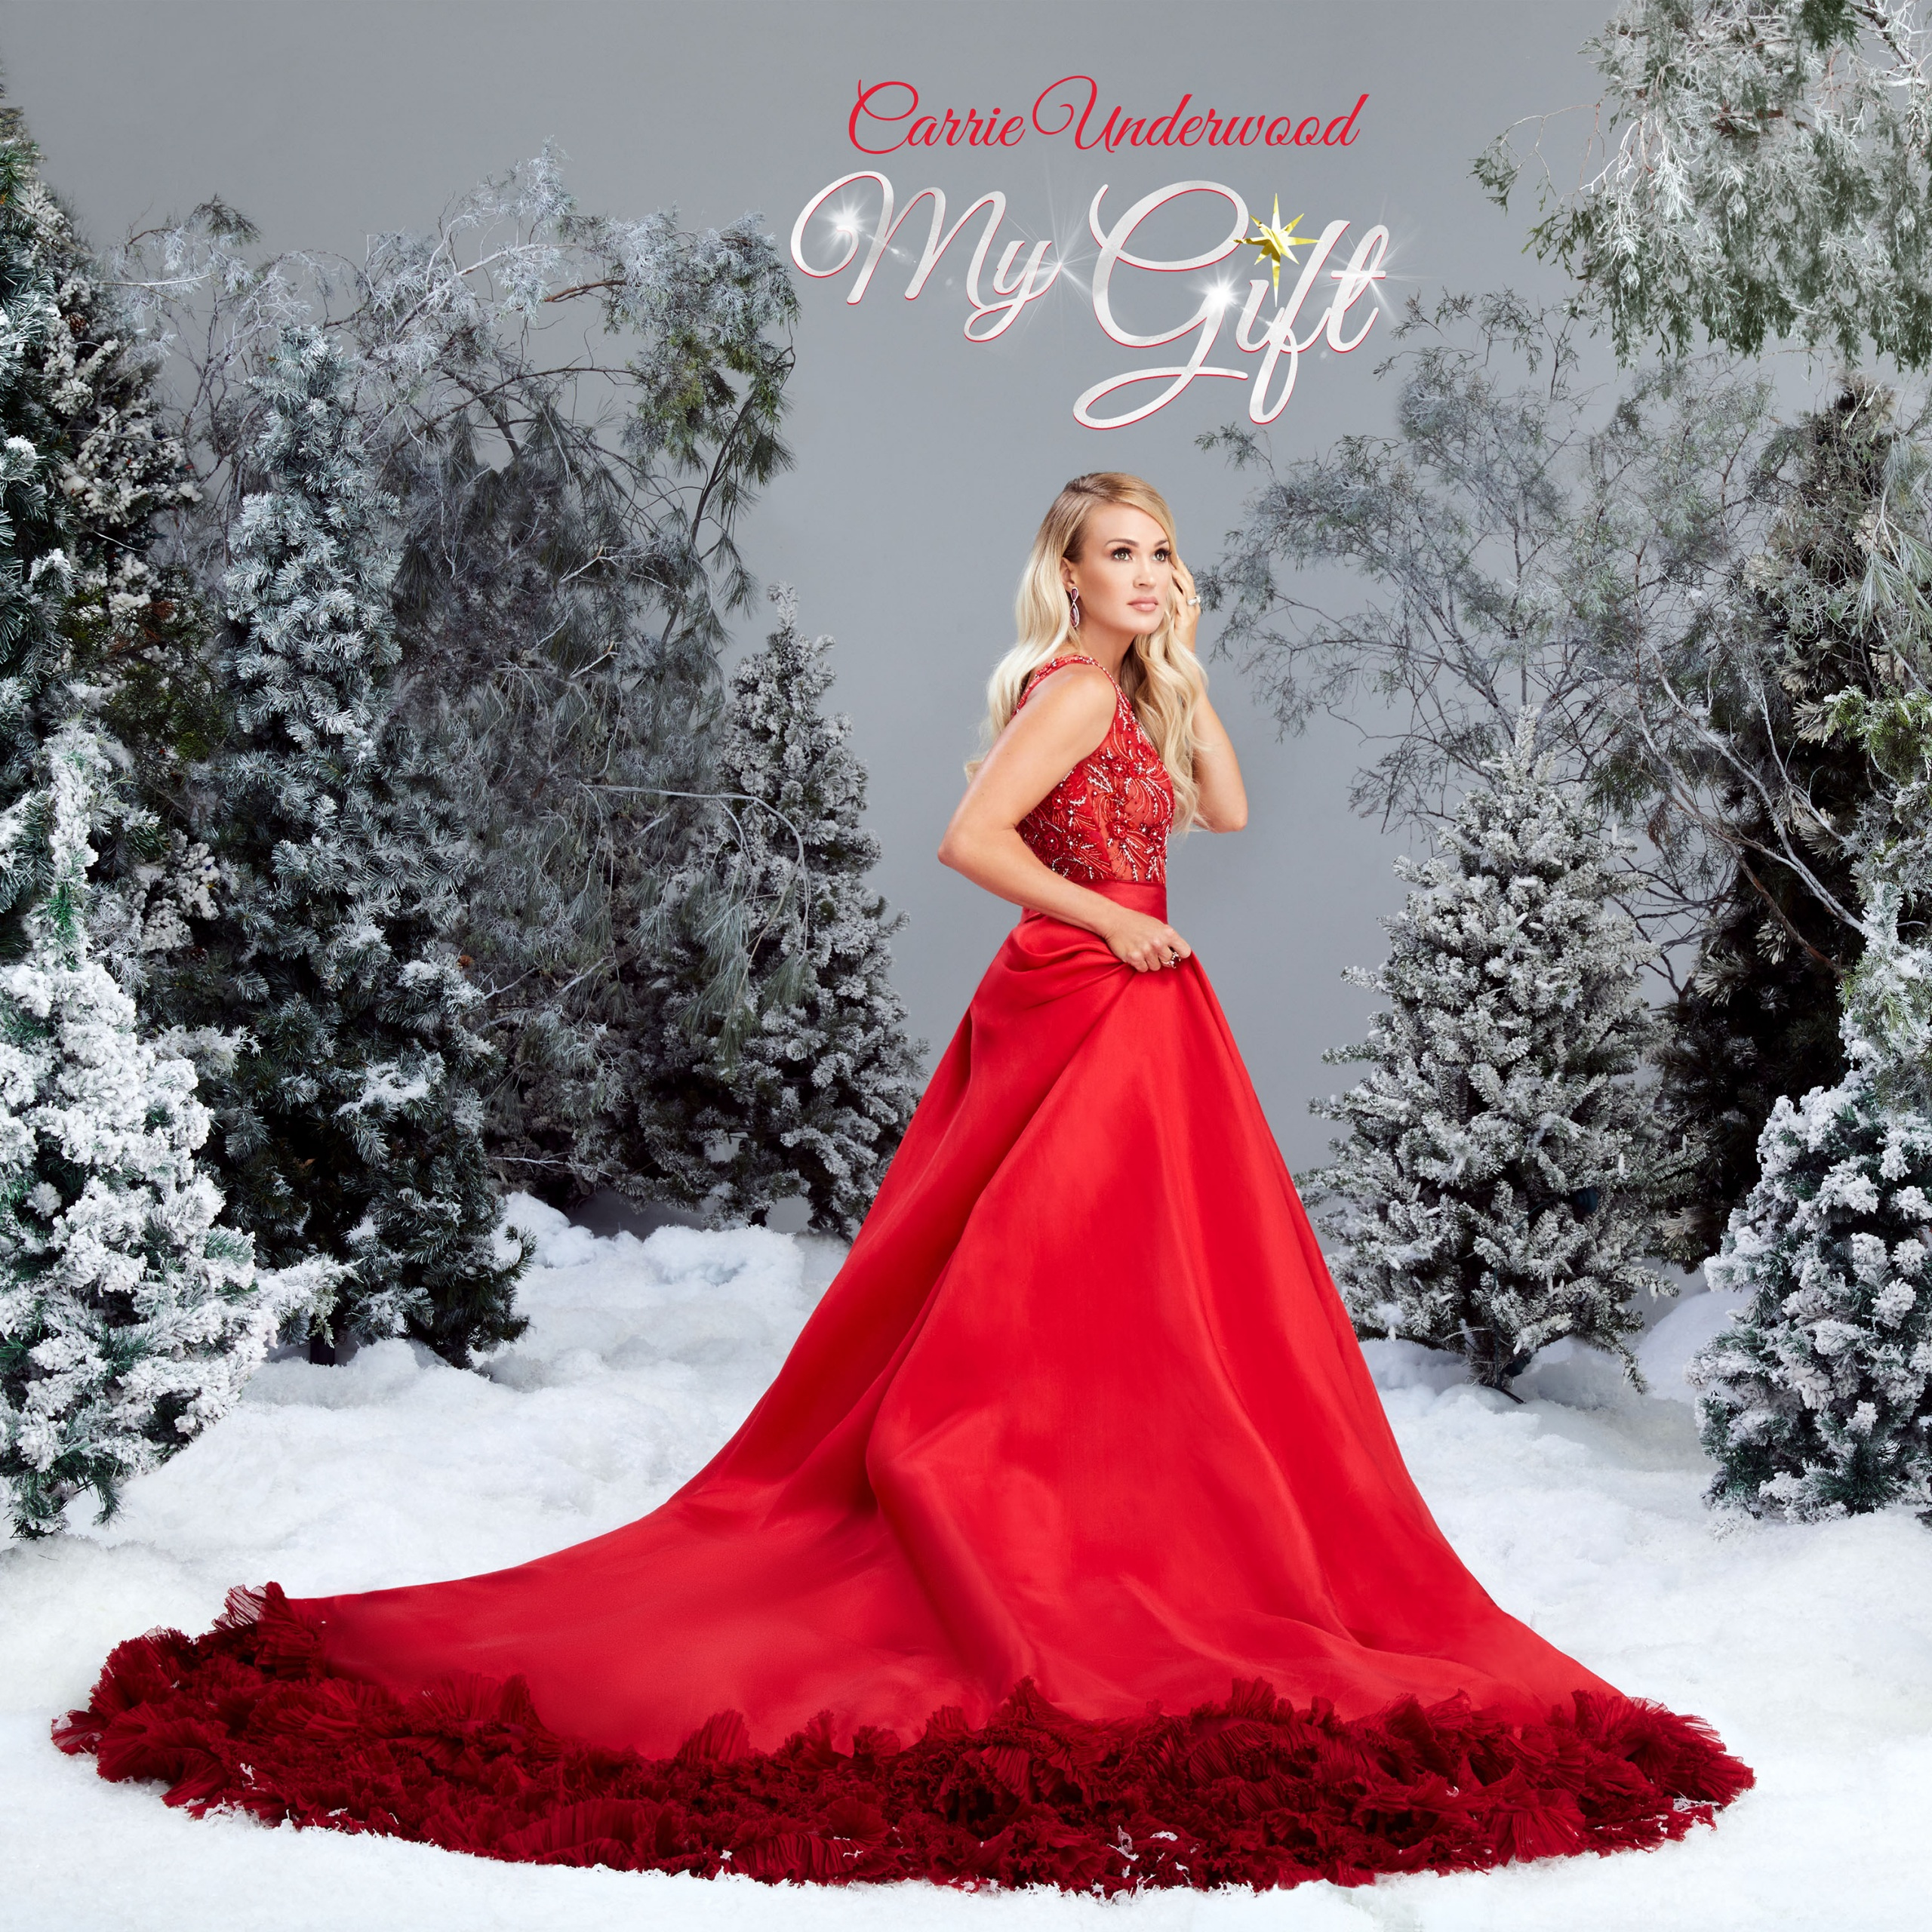 2020 Christmas Cd Releases Pressroom | CARRIE UNDERWOOD TO RELEASE FIRST EVER CHRISTMAS ALBUM